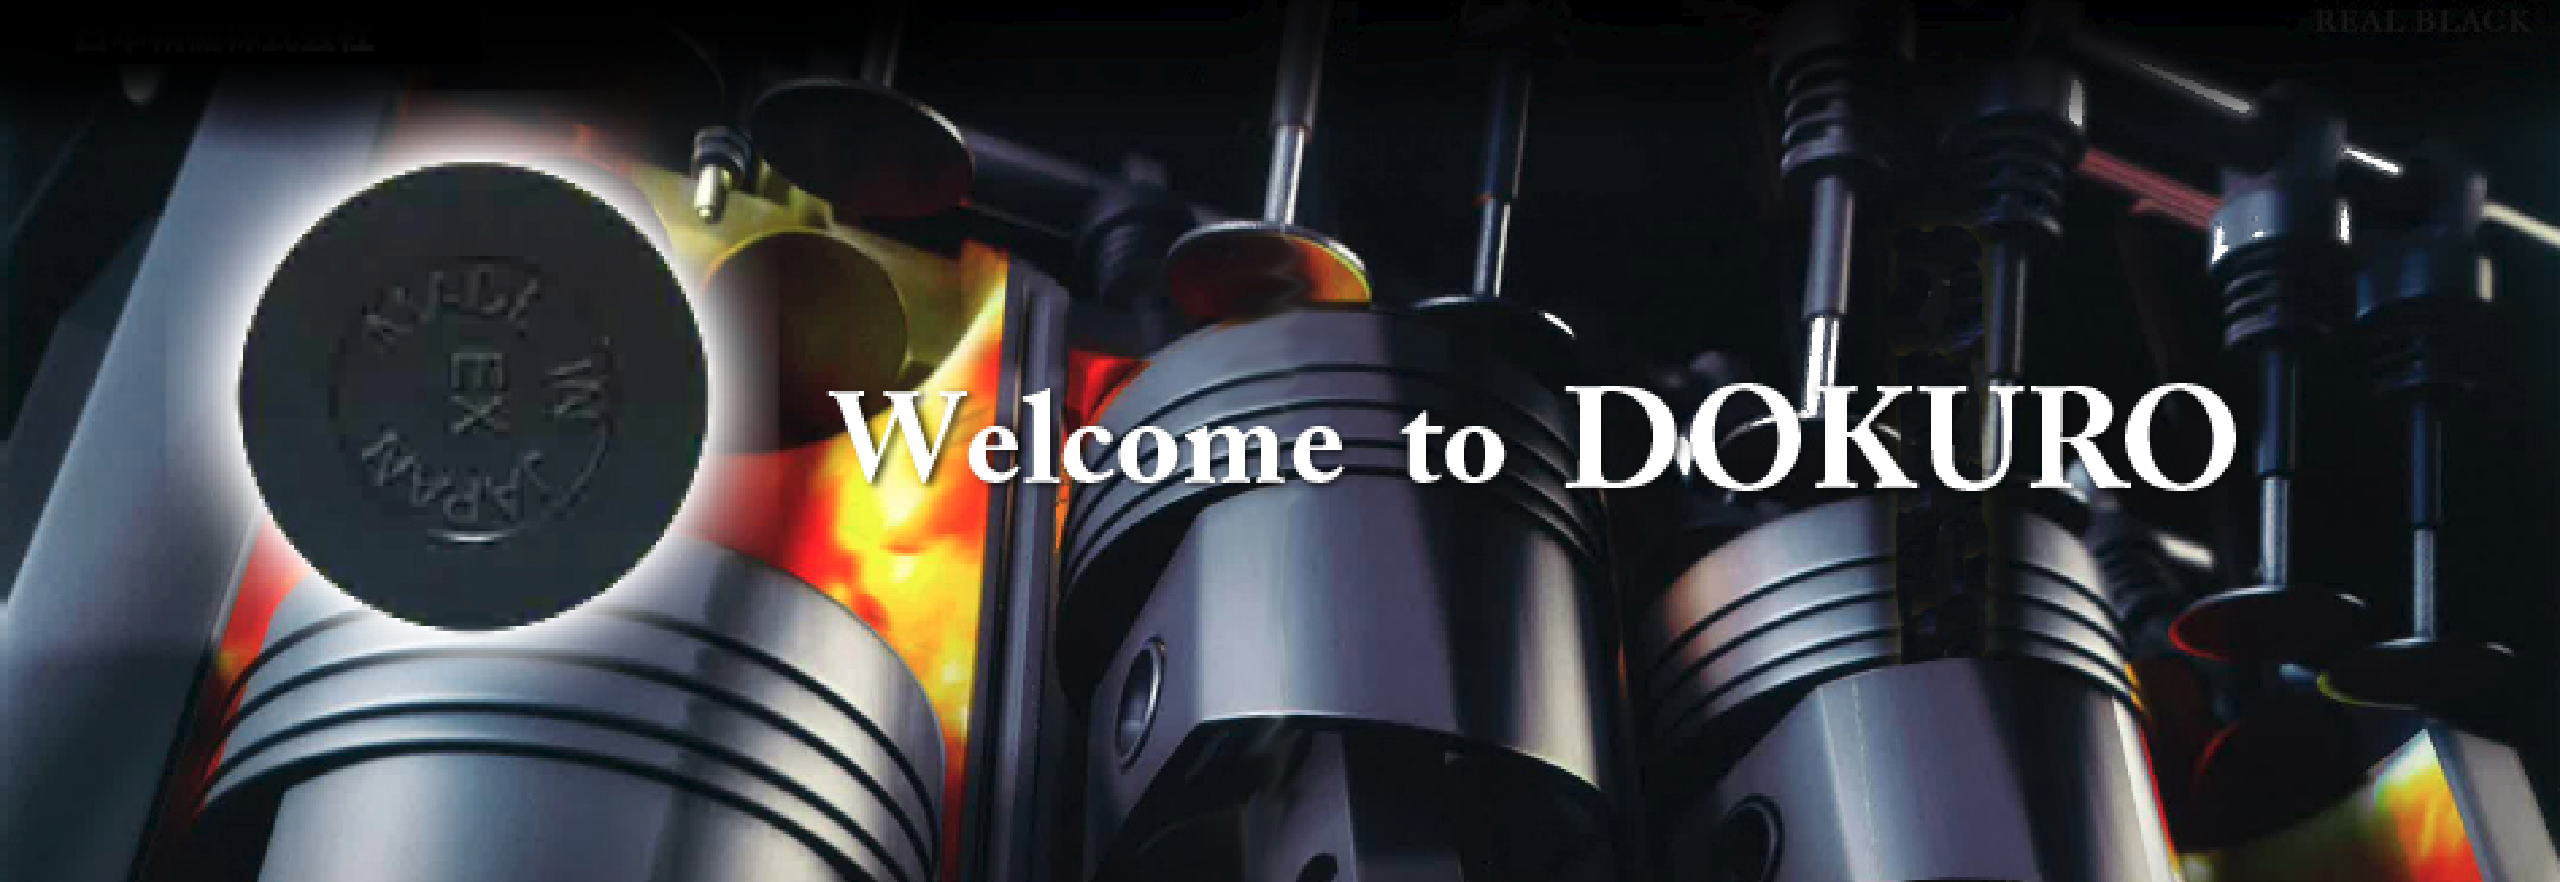 Welcome to DOKURO